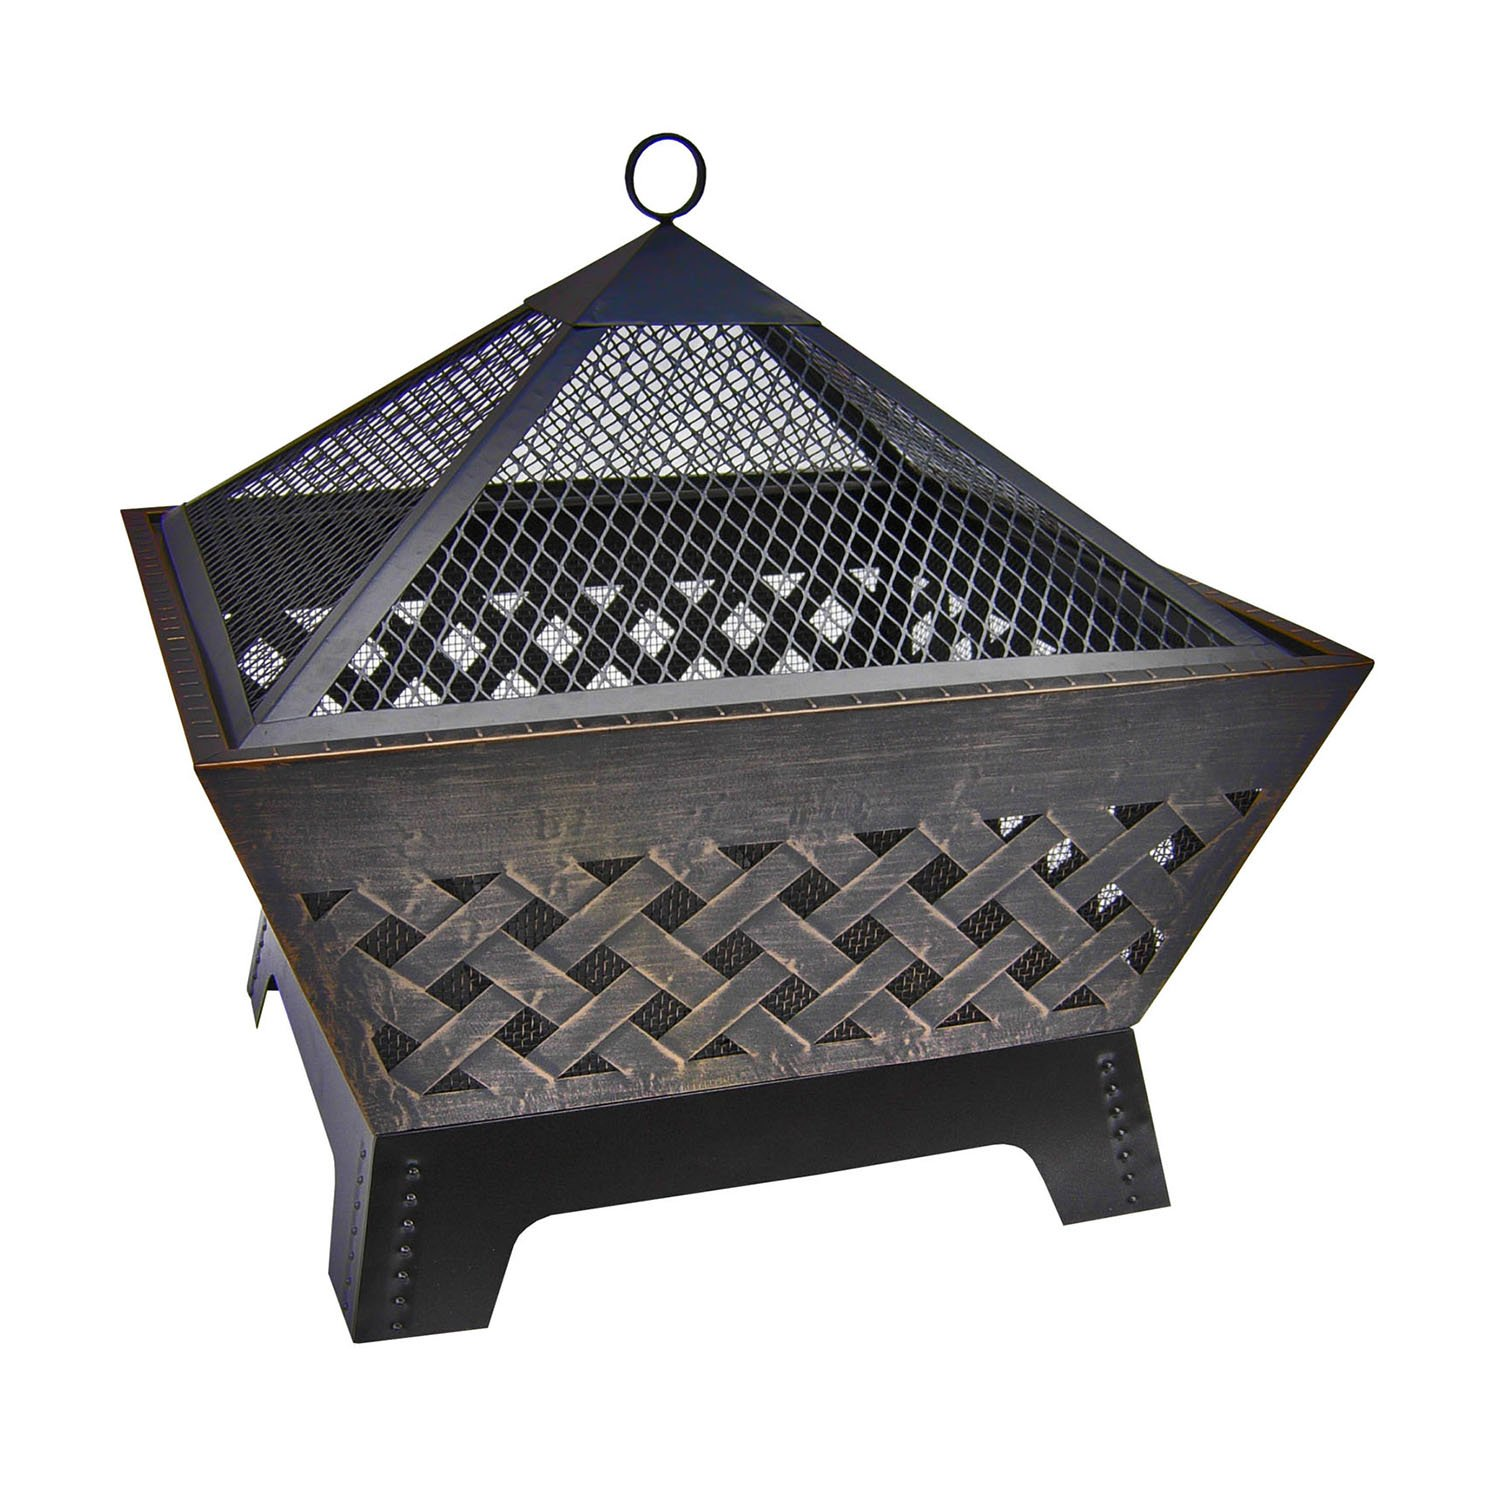 Barrone Fire Pit with Cover, 26-Inch, Antique Bronze